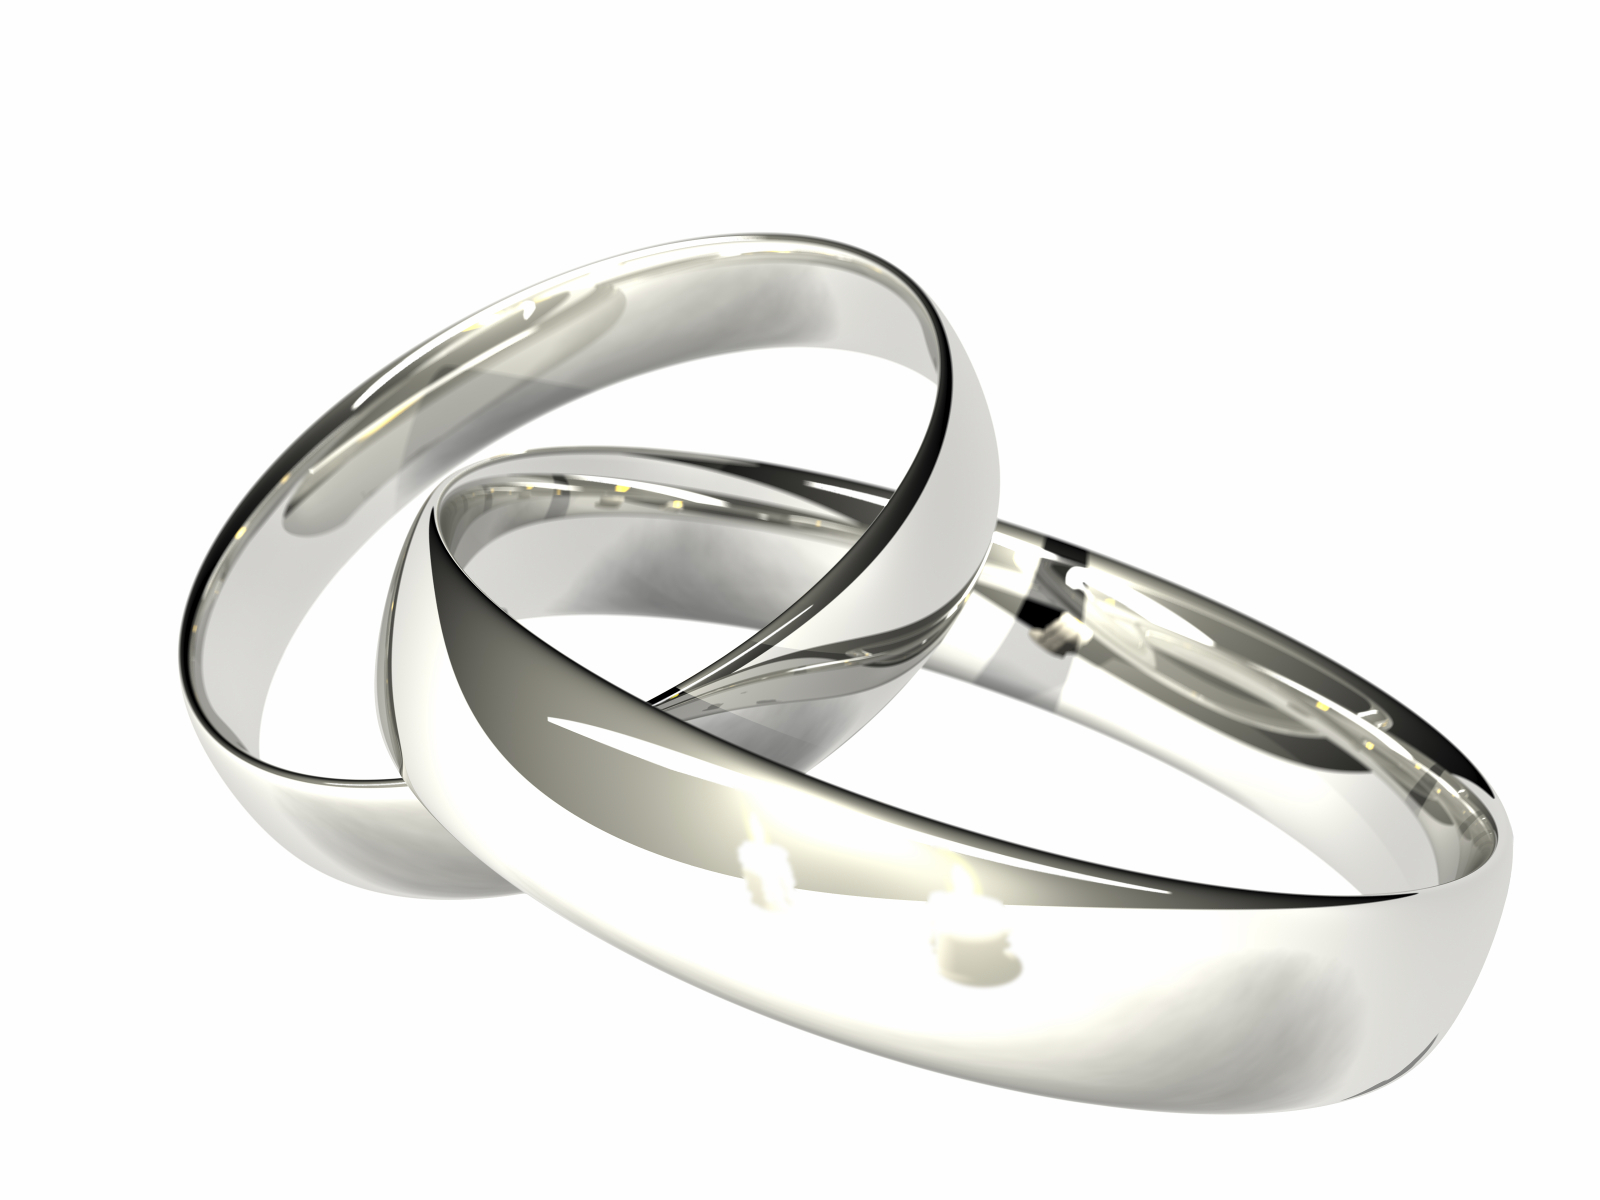 Marriage clipart linked ring. Lessons we can